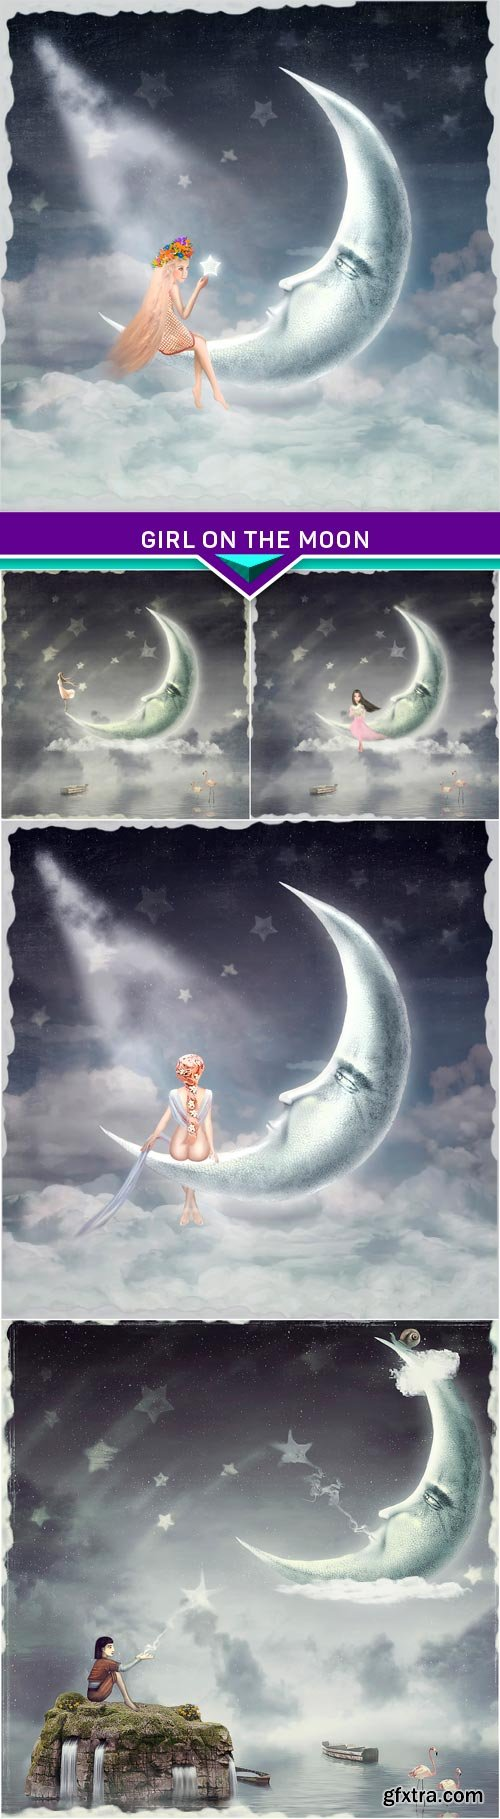 Art illustration of a girl on the moon under the stars 5x JPEG